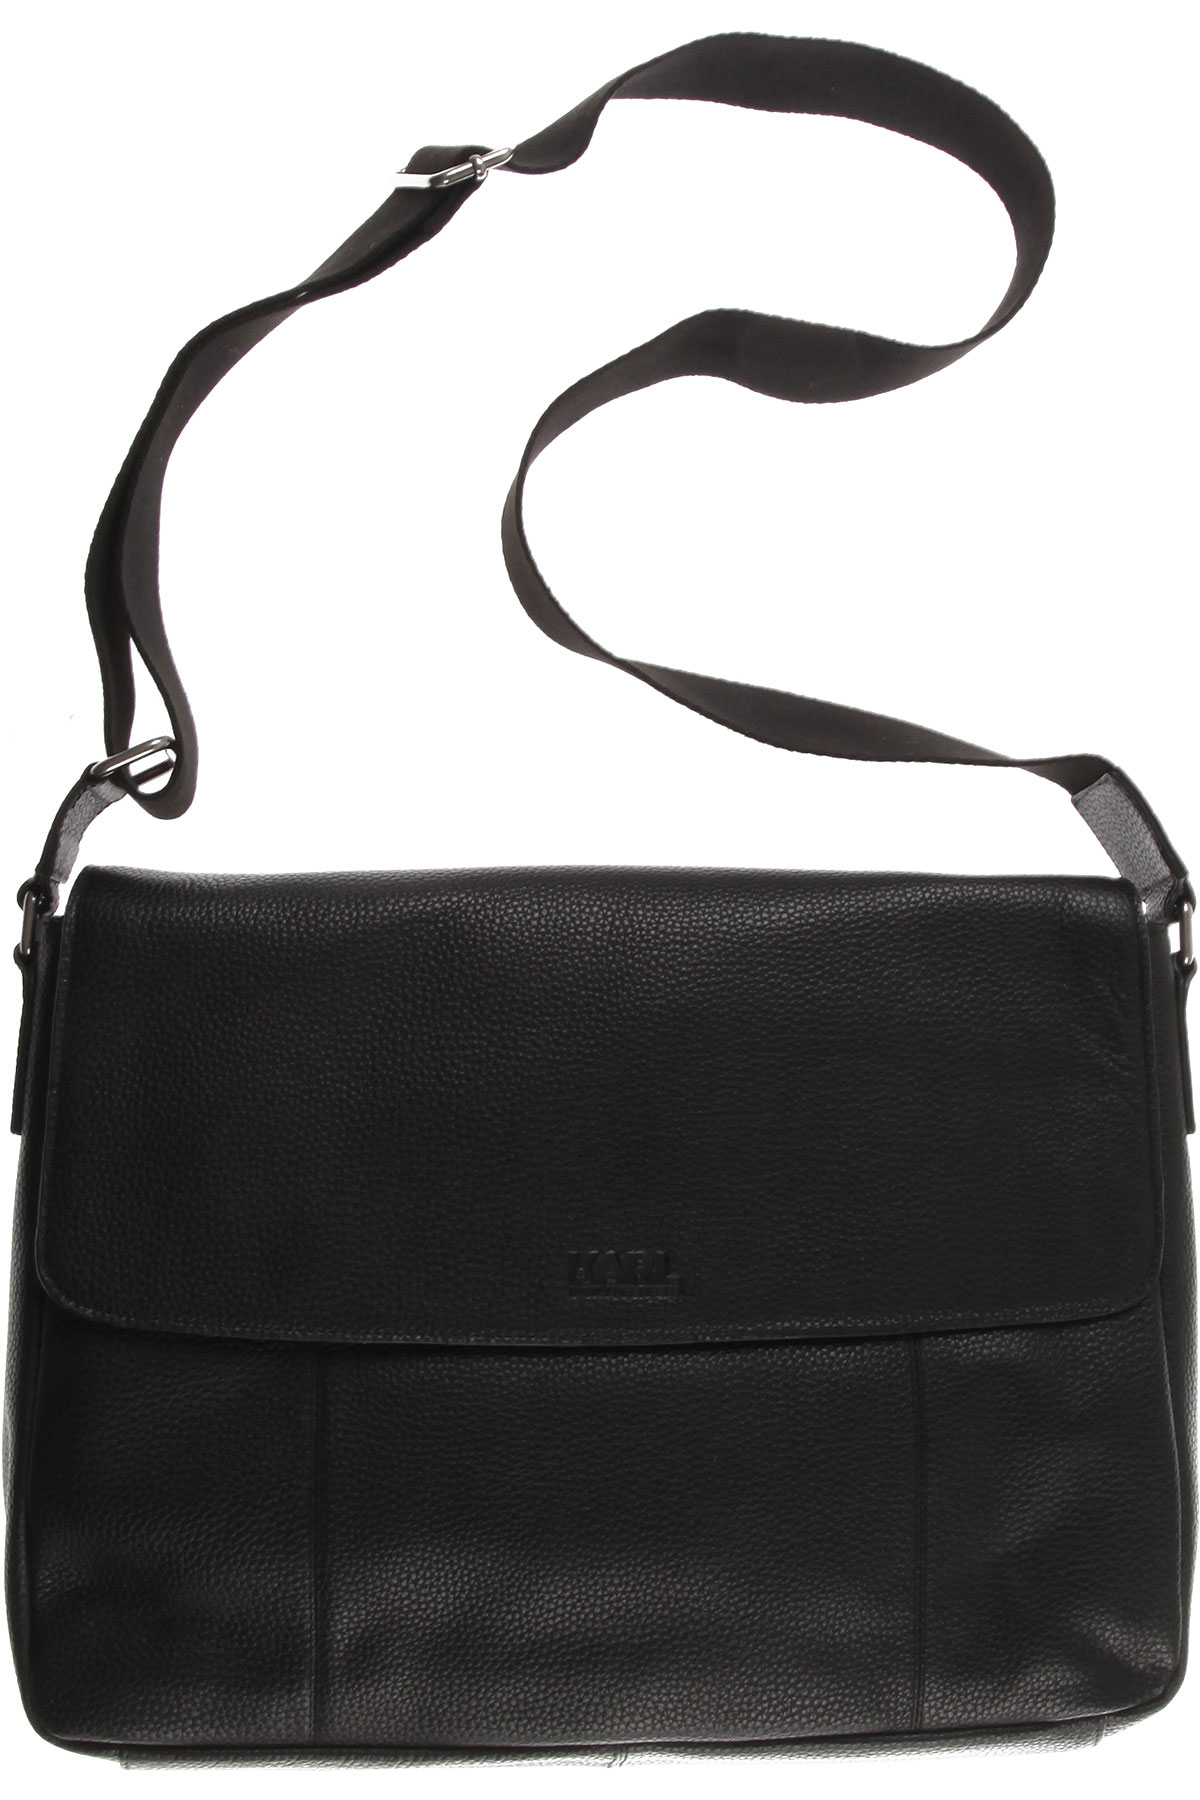 Karl Lagerfeld Briefcases On Sale, Black, Leather, 2019